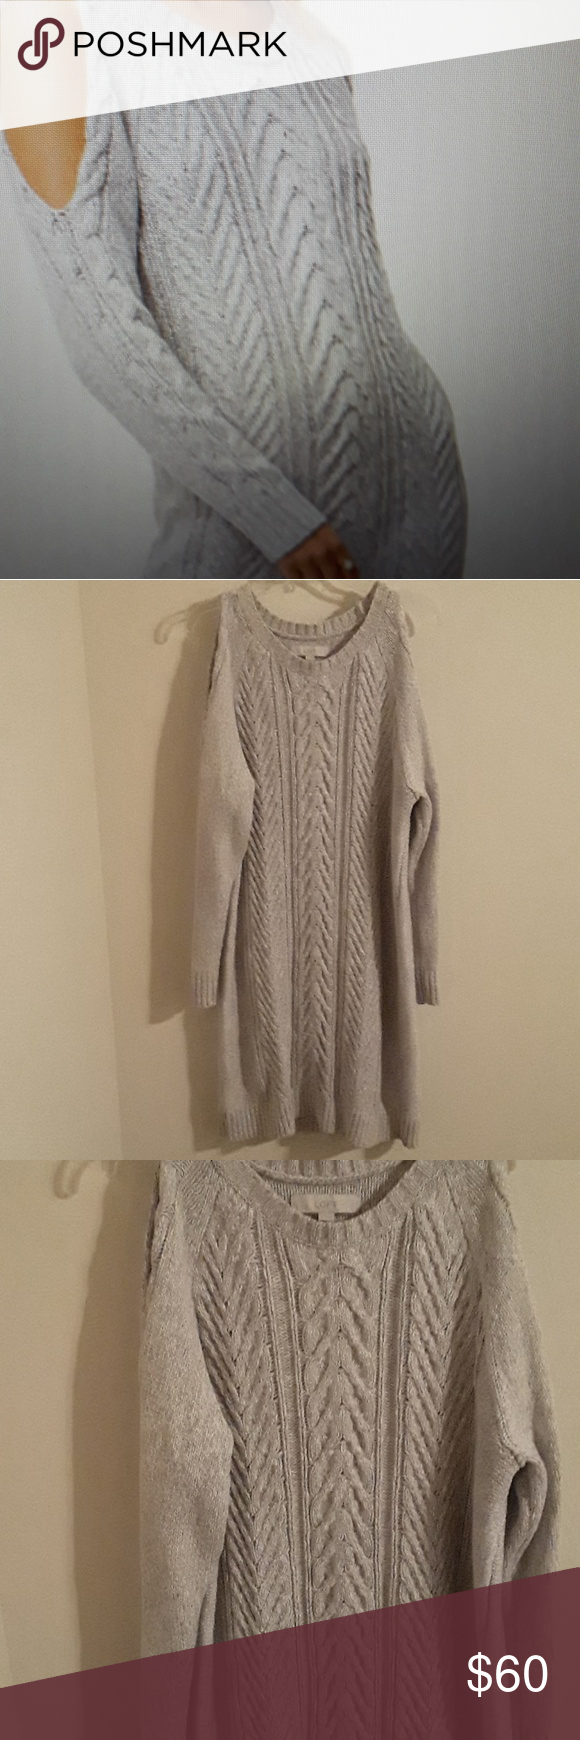 Loft Women Cable Sweater Dress Cable Sweater Dress Sweater Dress Sweaters